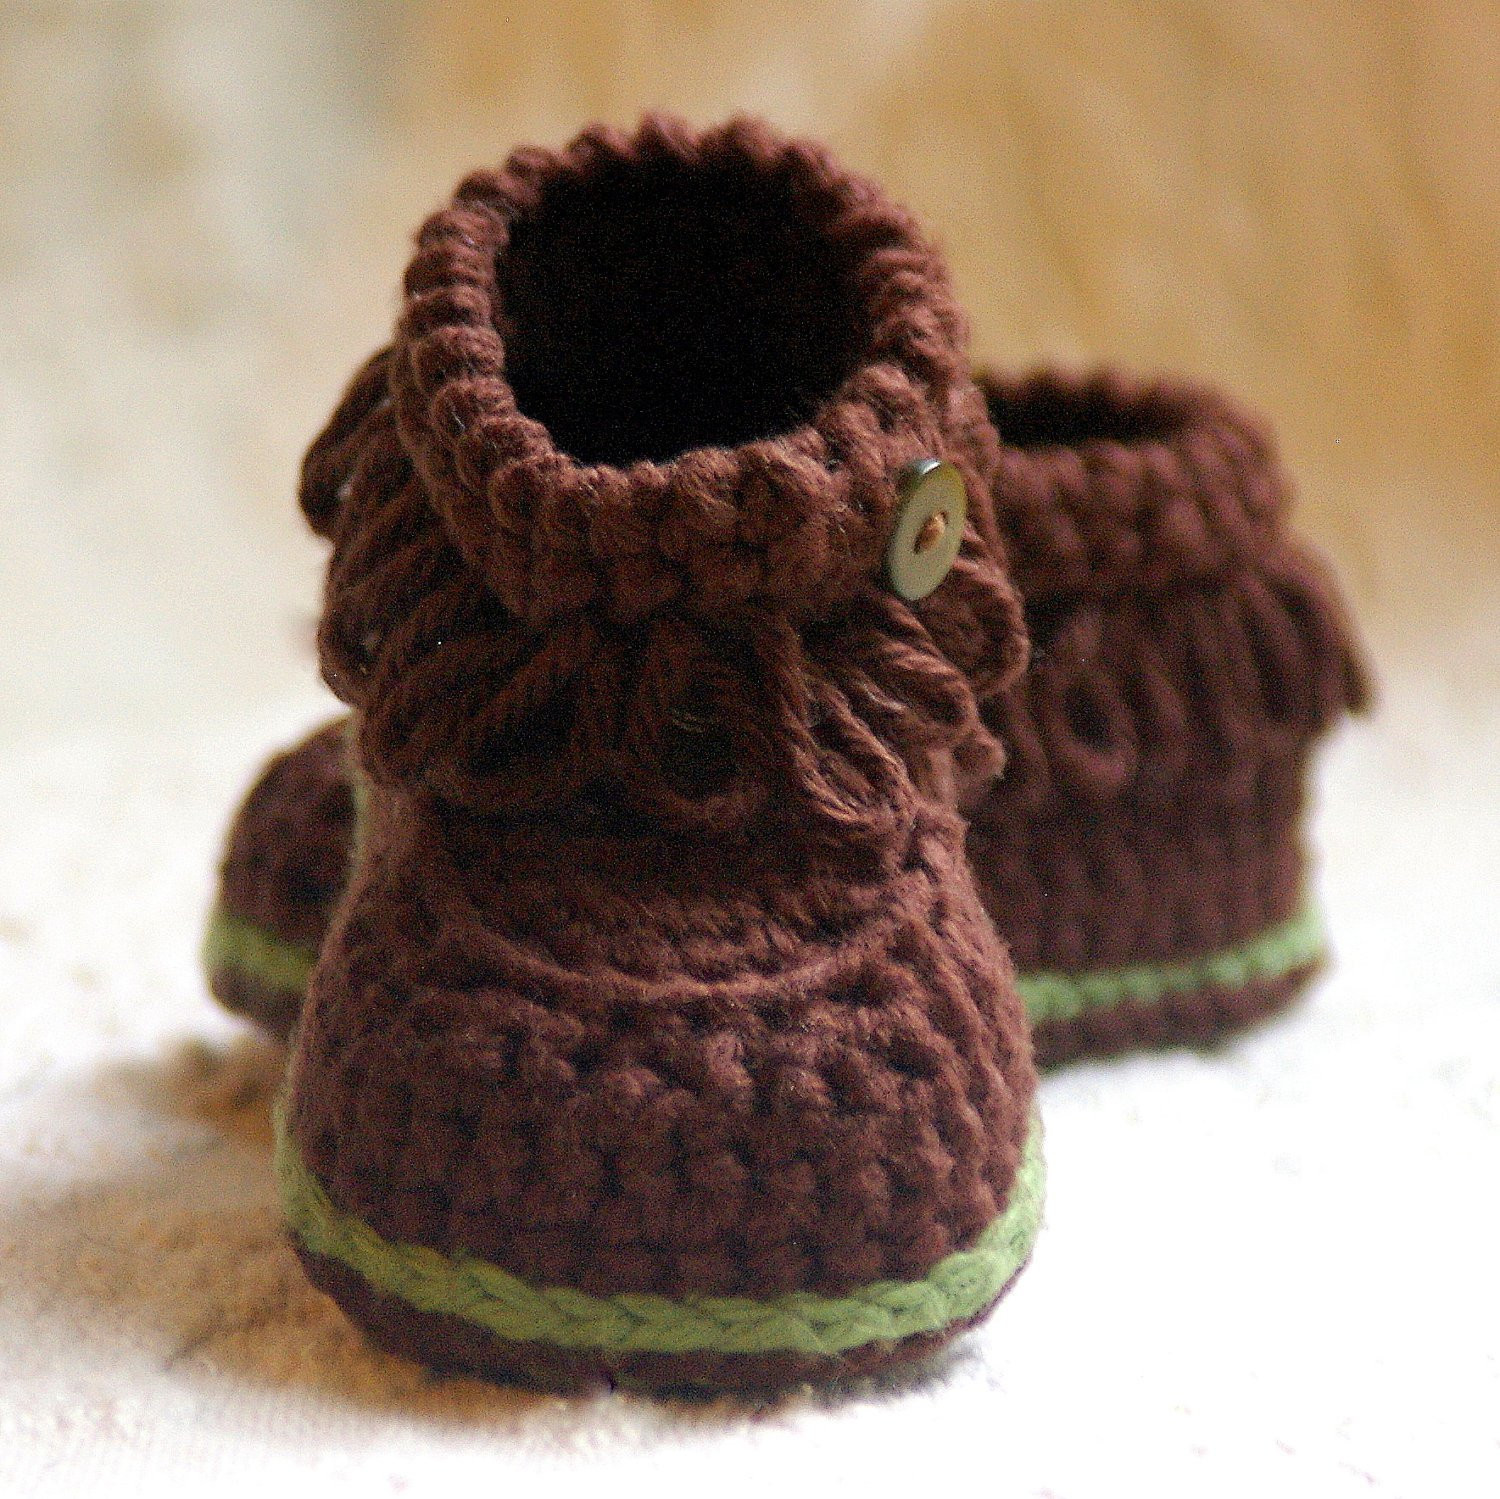 Crochet Booties Awesome Crochet Pattern Fringe Baby Booties Pattern Number 207 Of Wonderful 43 Pics Crochet Booties